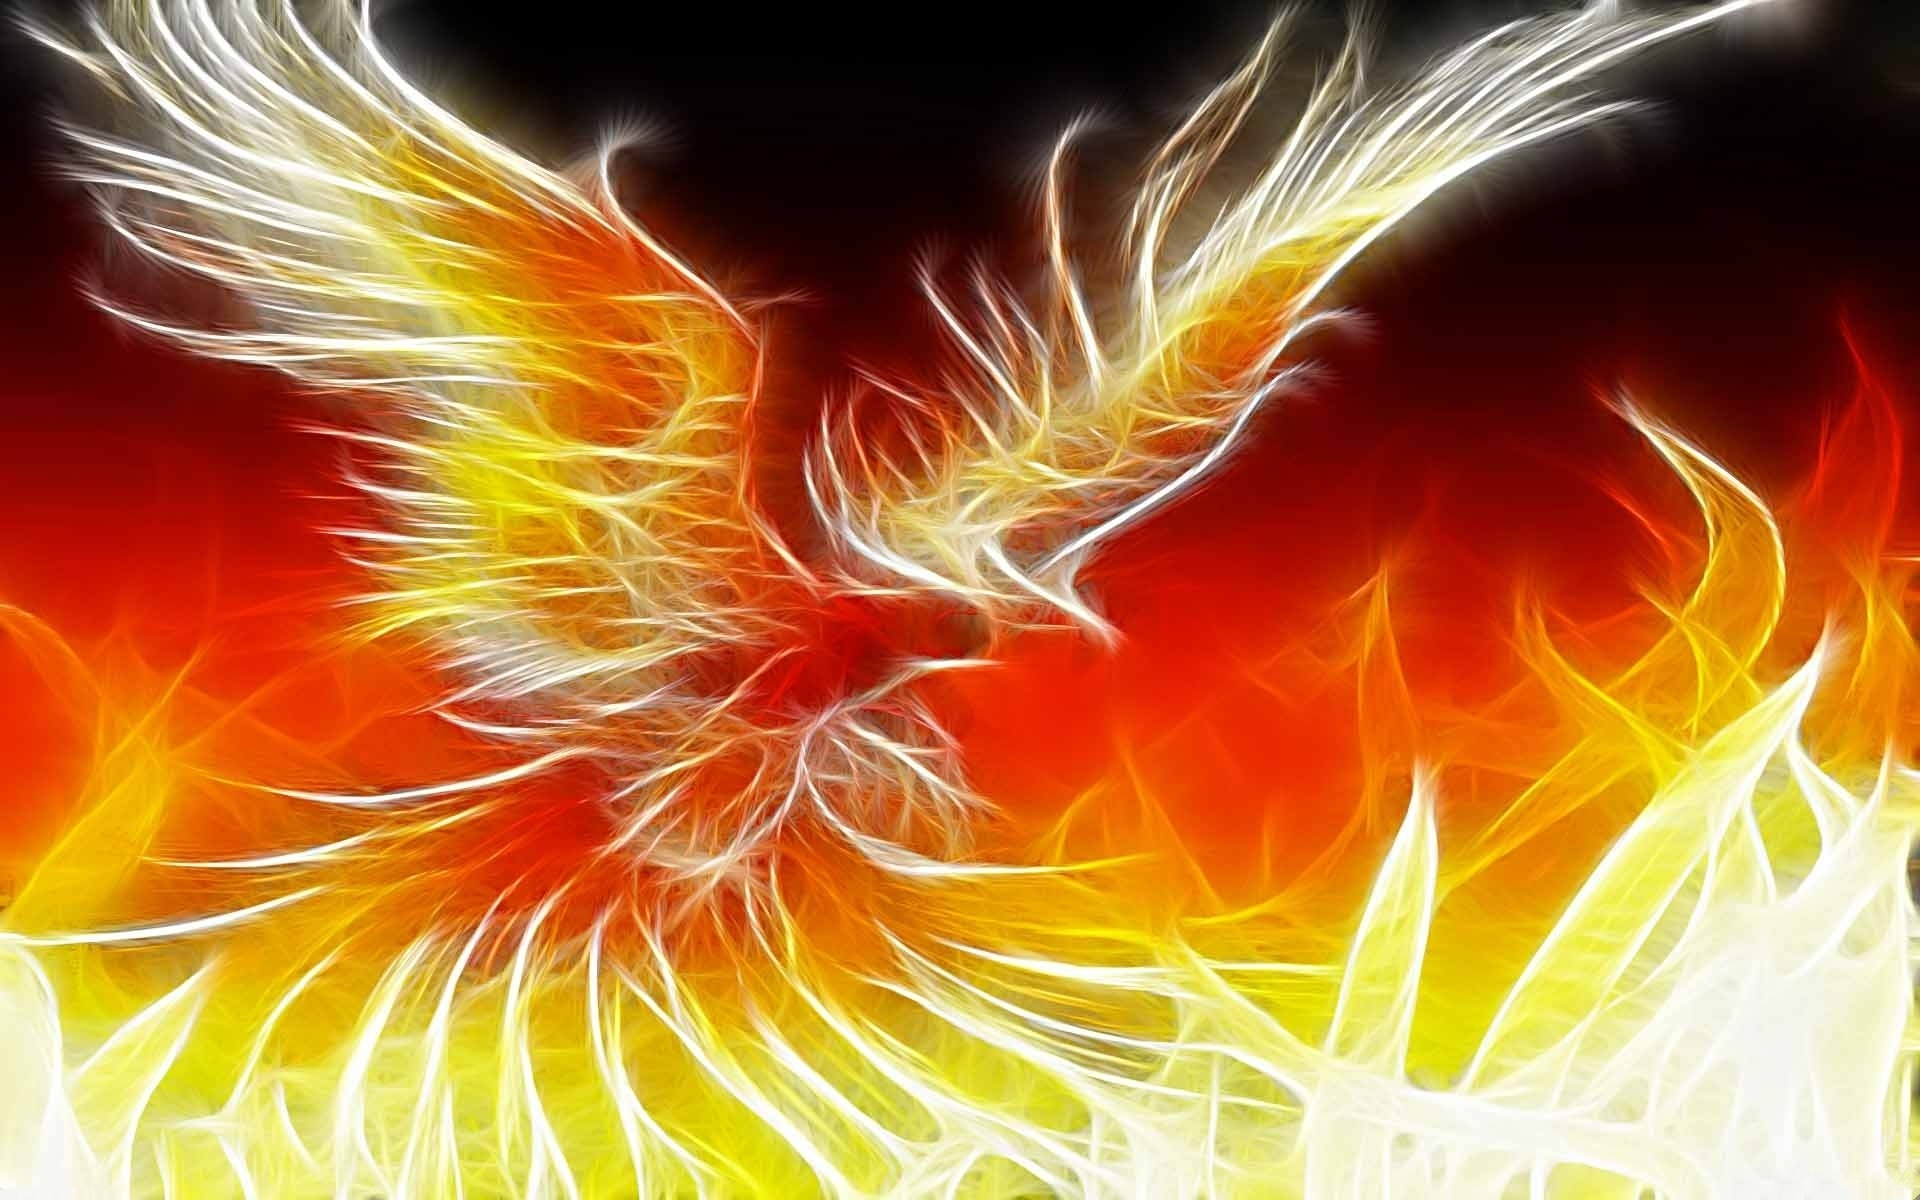 Download phoenix live wallpaper  Iphone  enuptodowncom